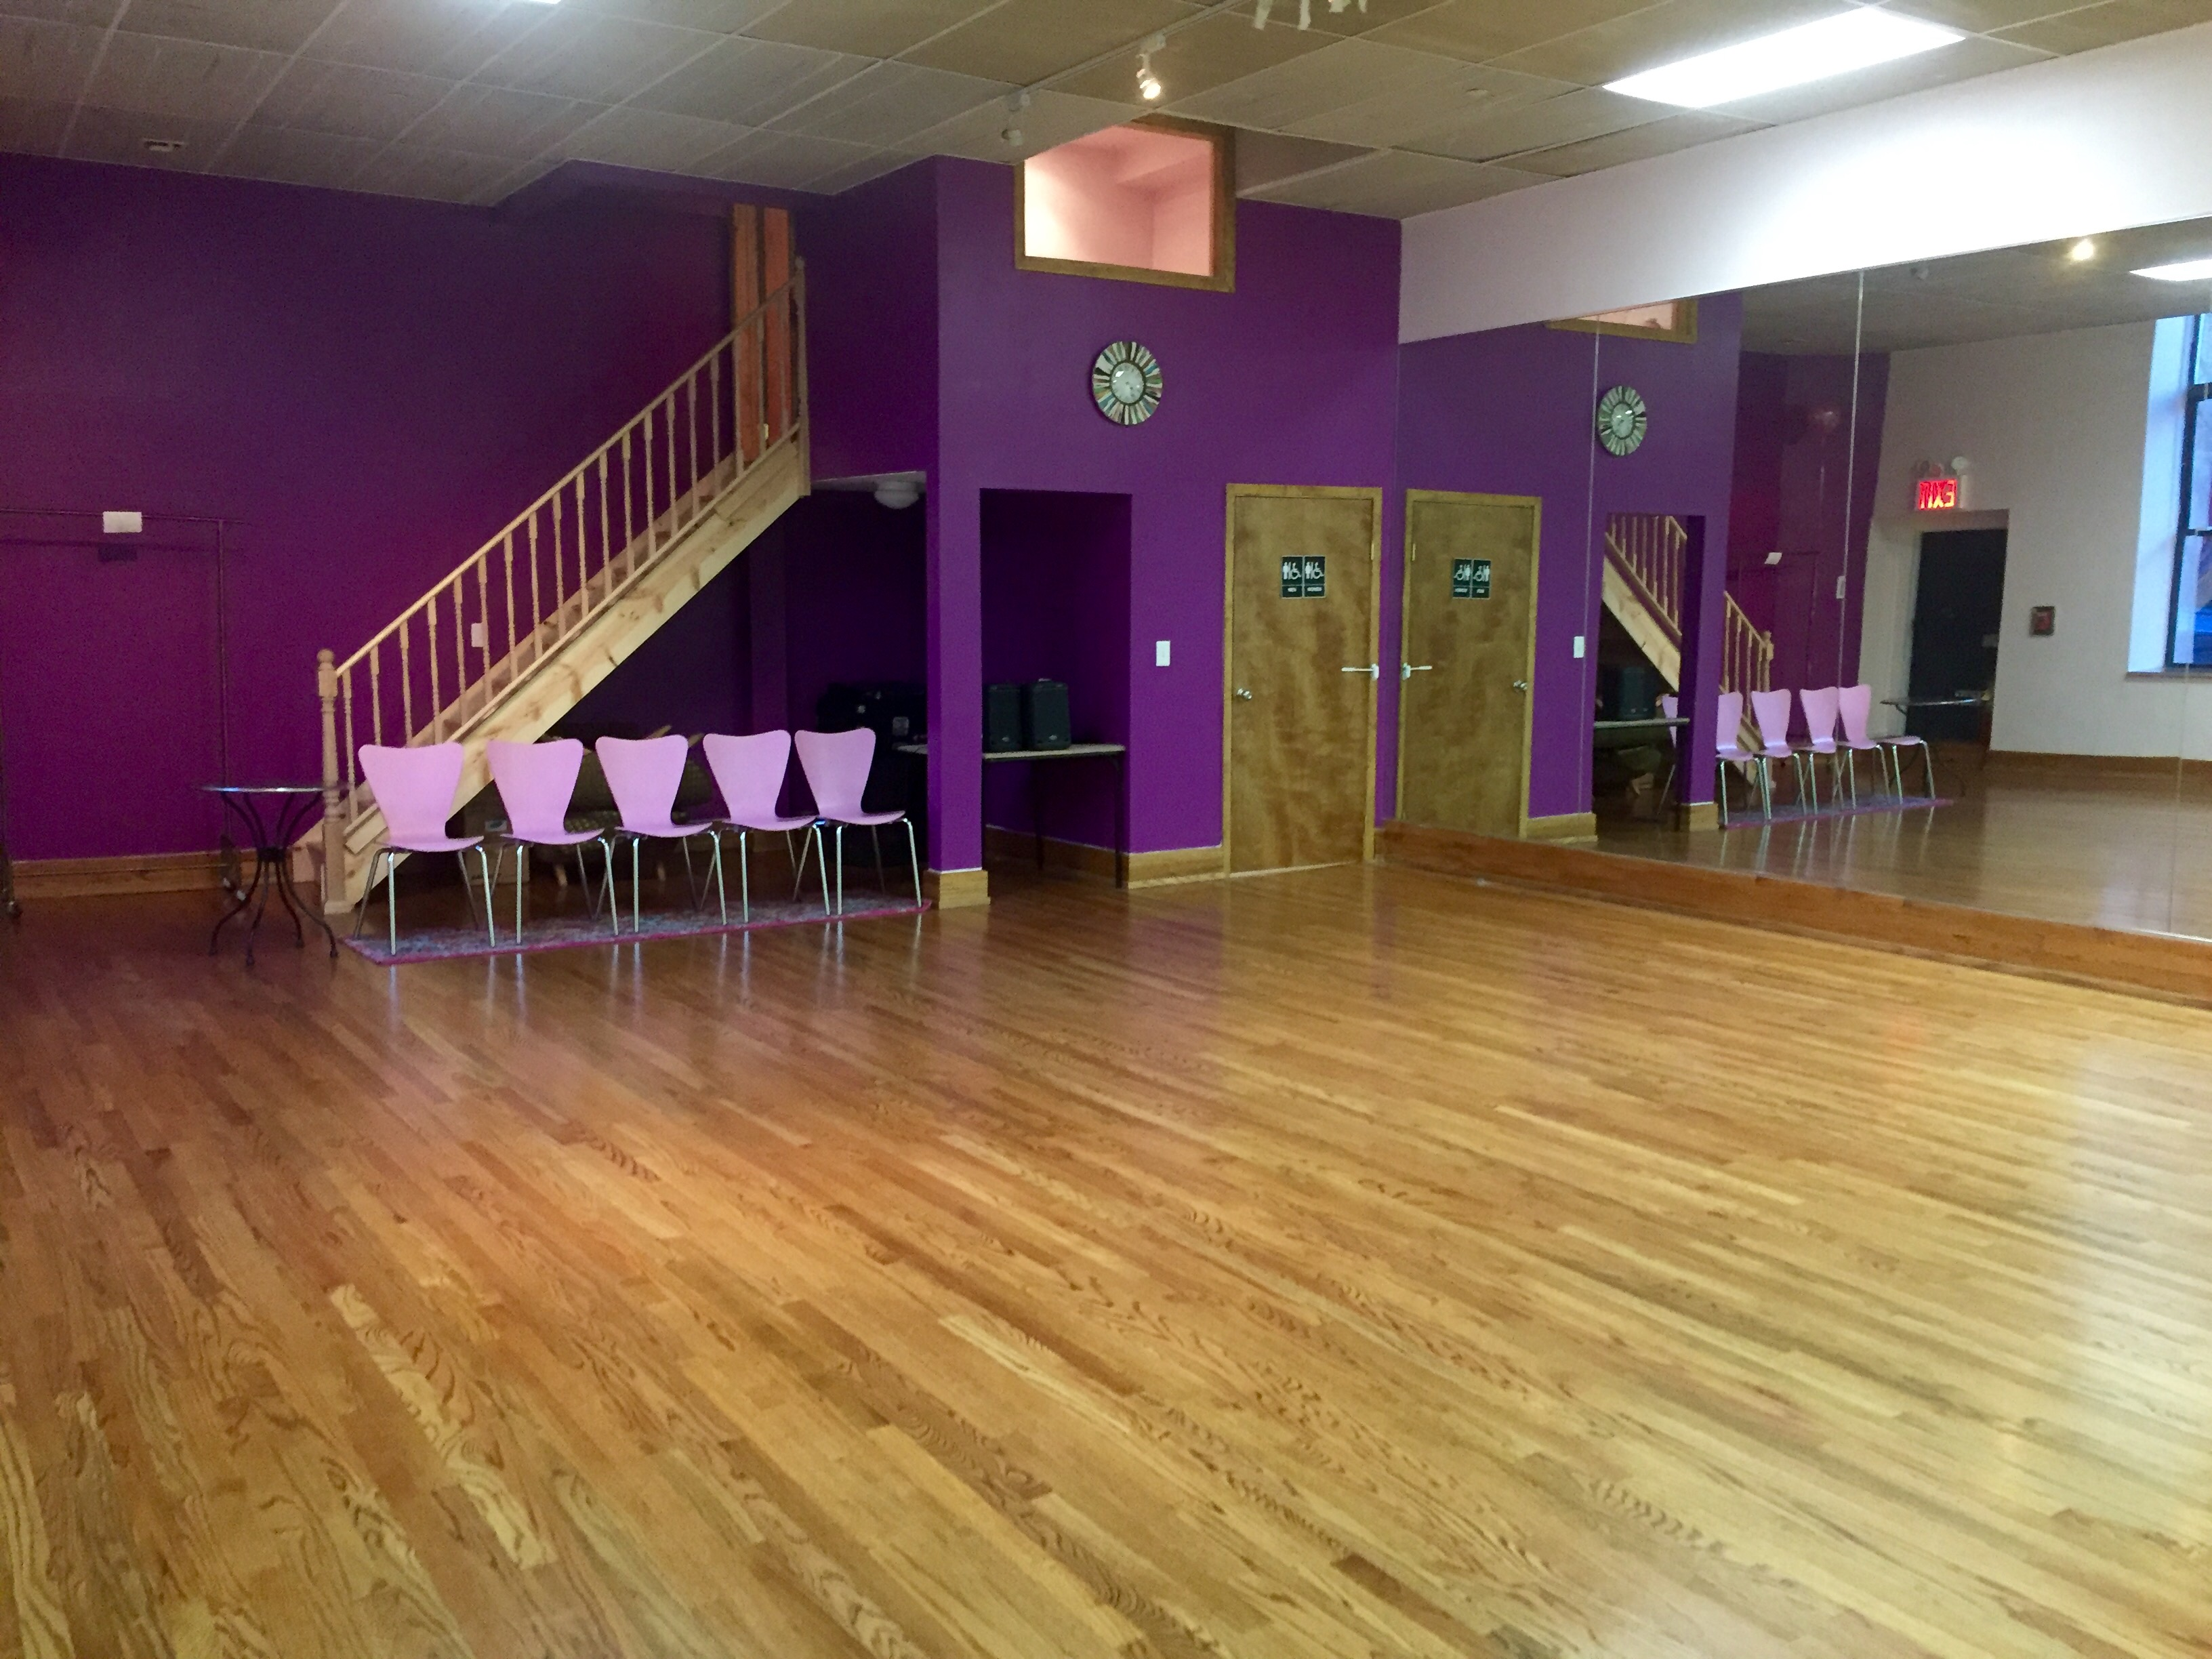 Rehearsal Space Rental NYC. 2nd Floor Dance Studio Spaces. Space ...